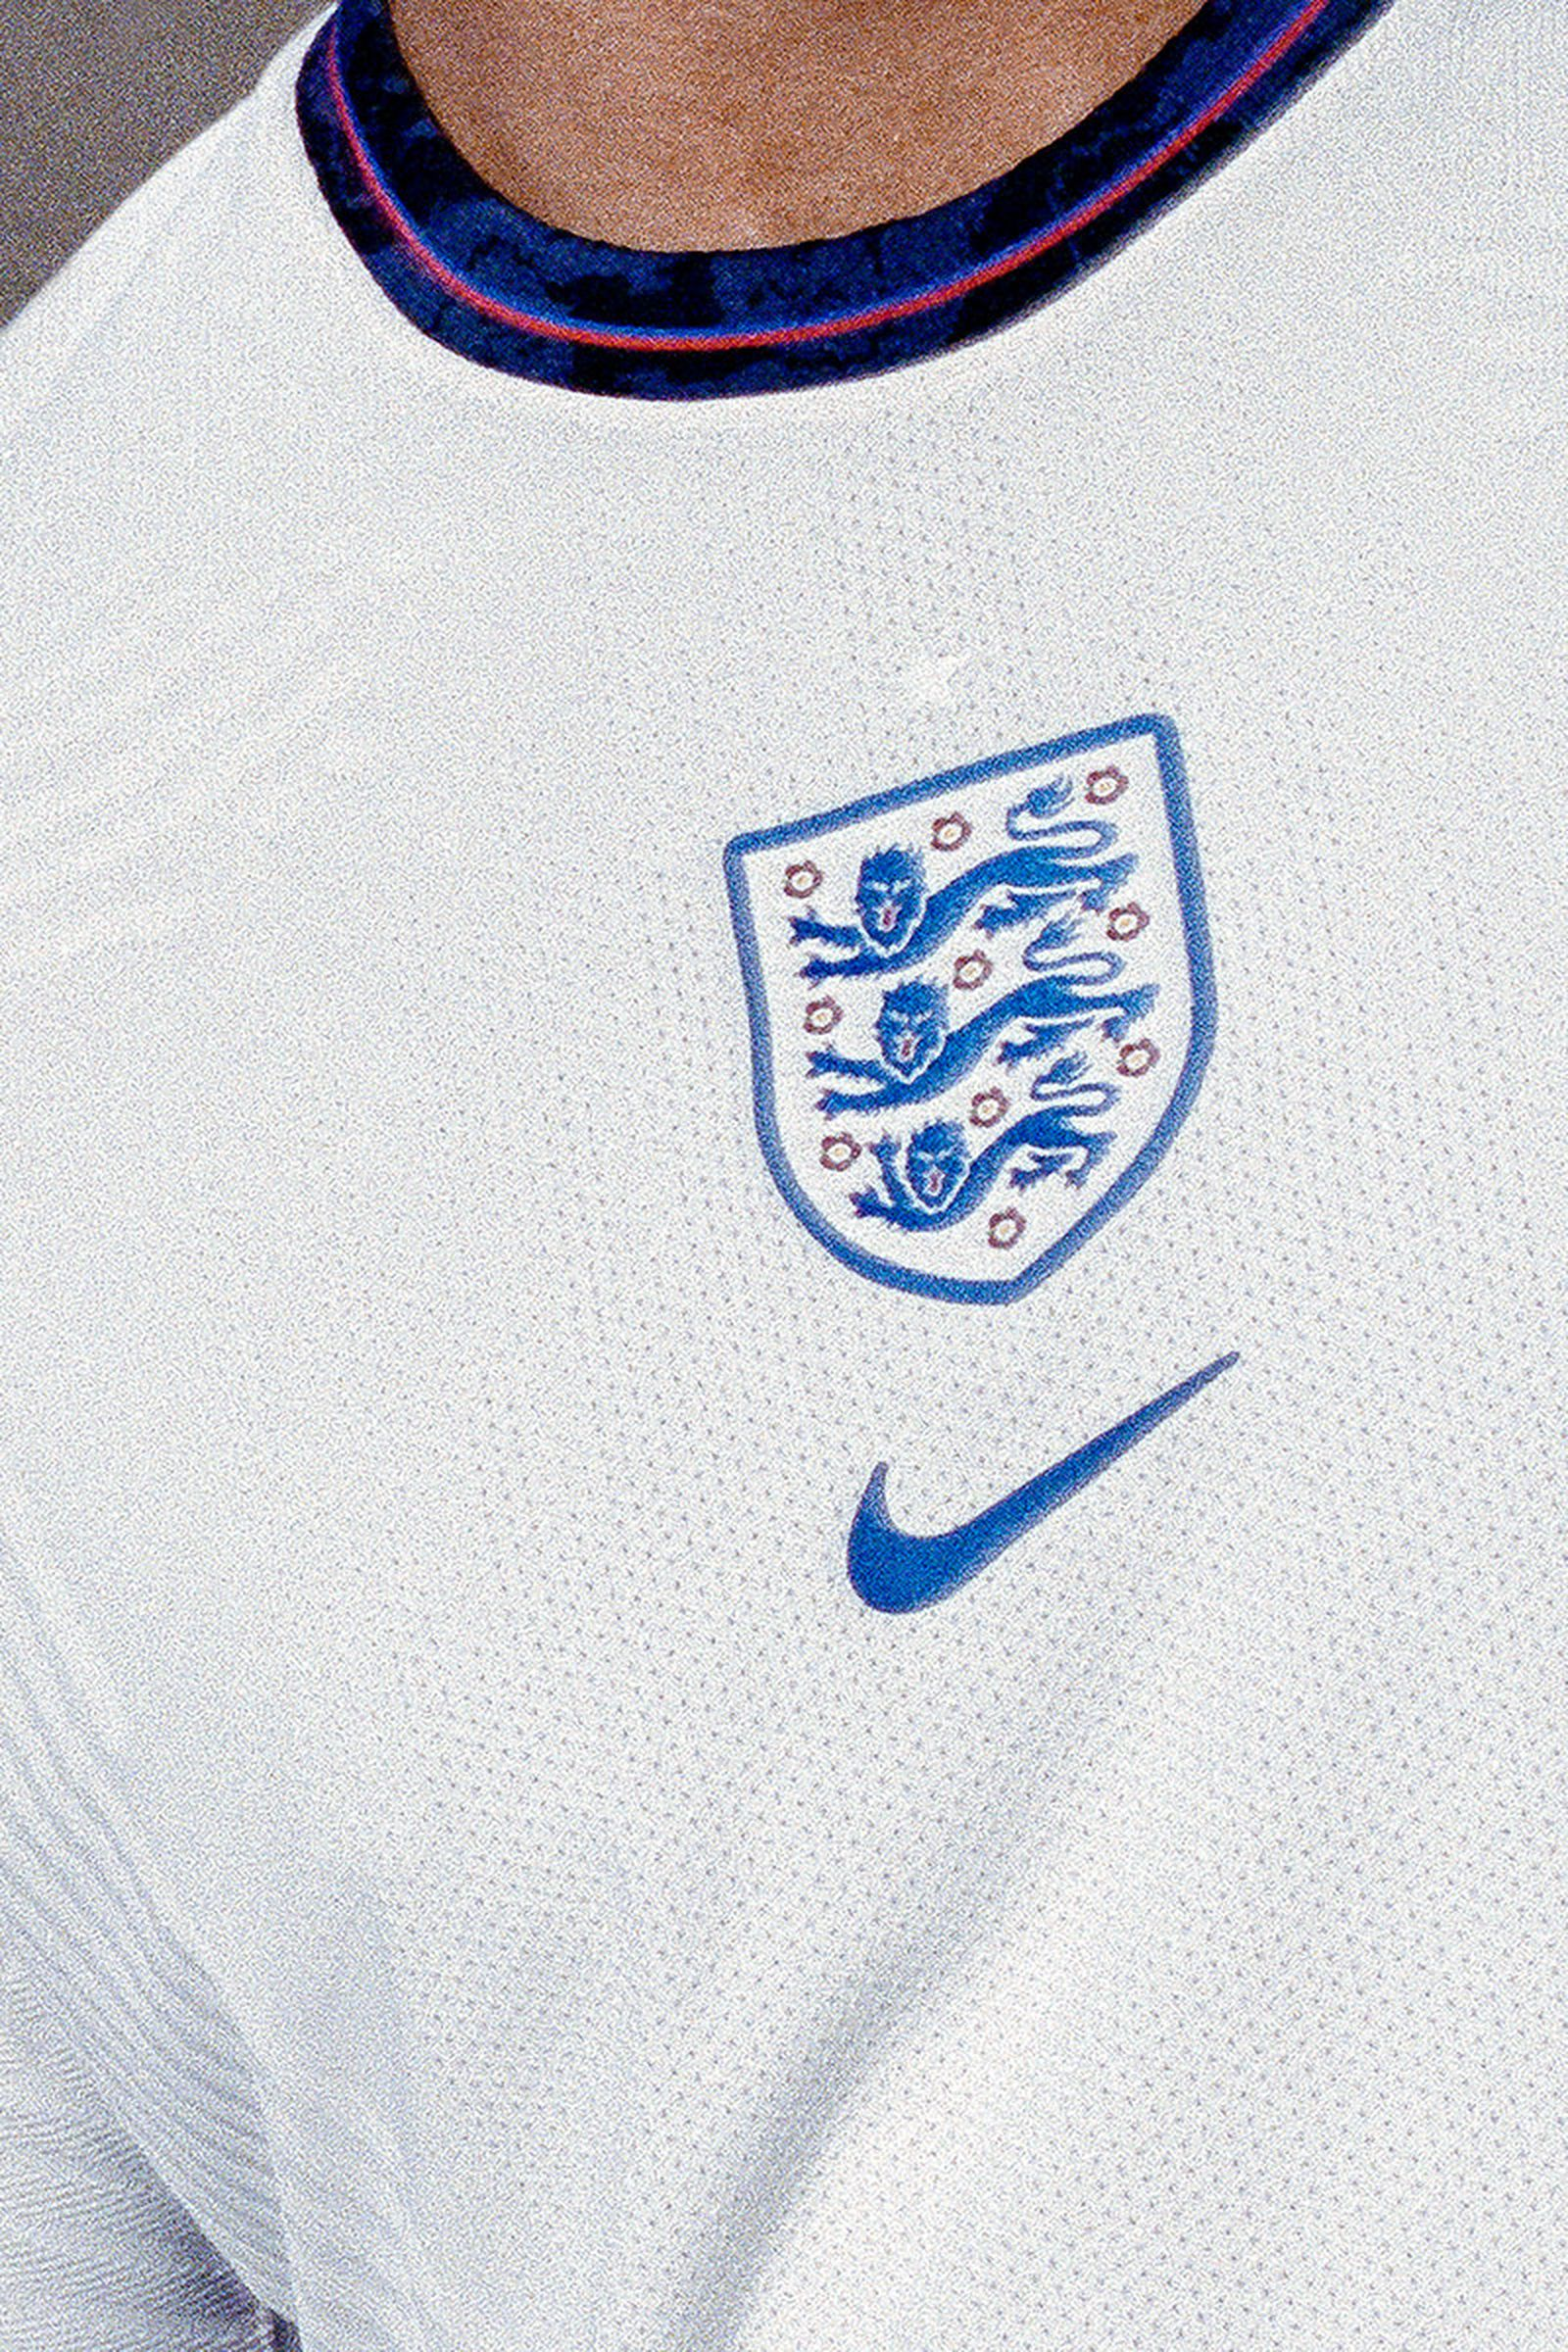 nike-national-team-kits-2020-ranking-08